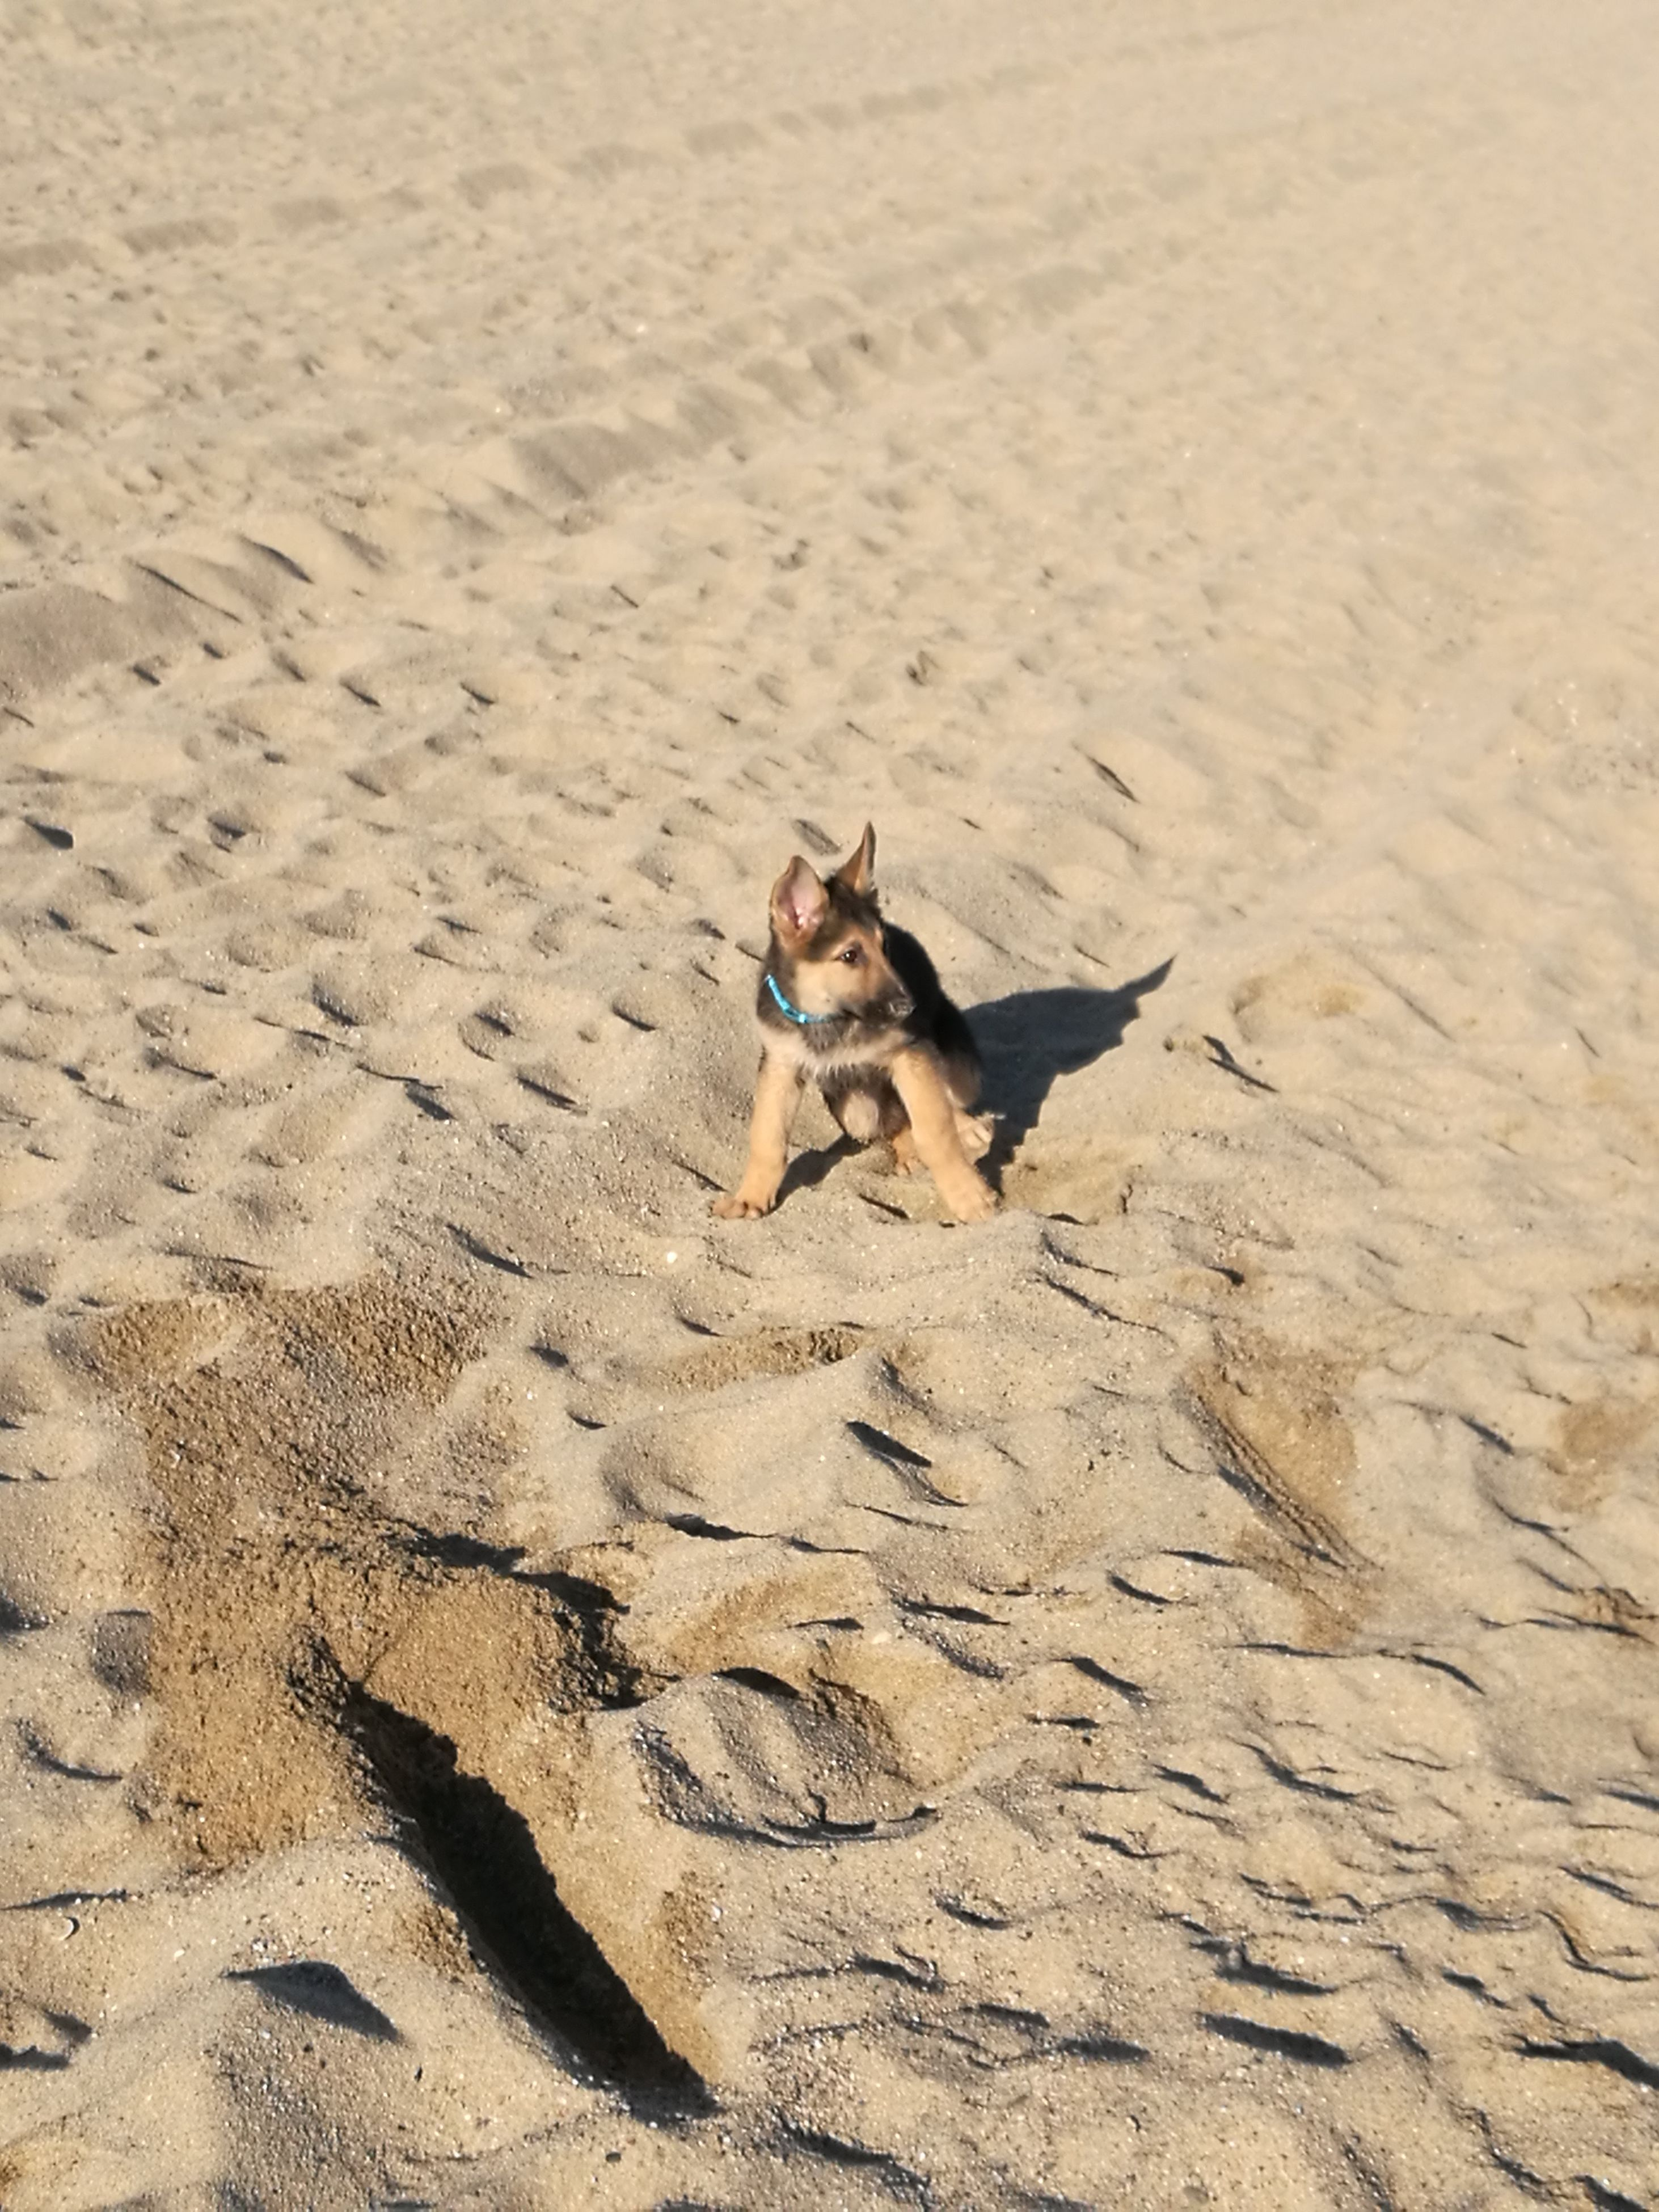 sand, one animal, pets, beach, animal themes, dog, mammal, domestic animals, no people, day, nature, outdoors, paw print